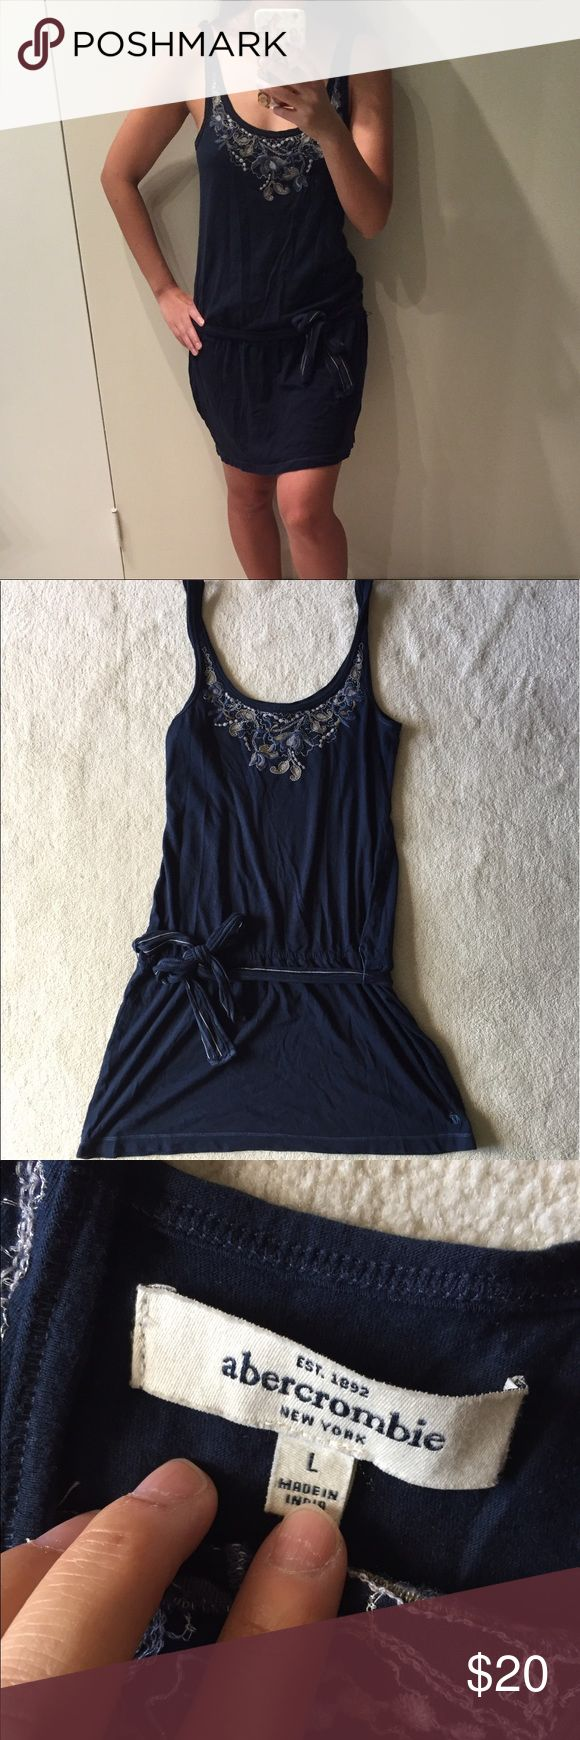 Navy blue Abercrombie dress Navy blue Abercrombie kids dress with floral details. Kids size L but fits like adult S. No trades. Gently used in good condition. Please ask all questions before purchasing and use the offer button, thanks! abercrombie kids Dresses